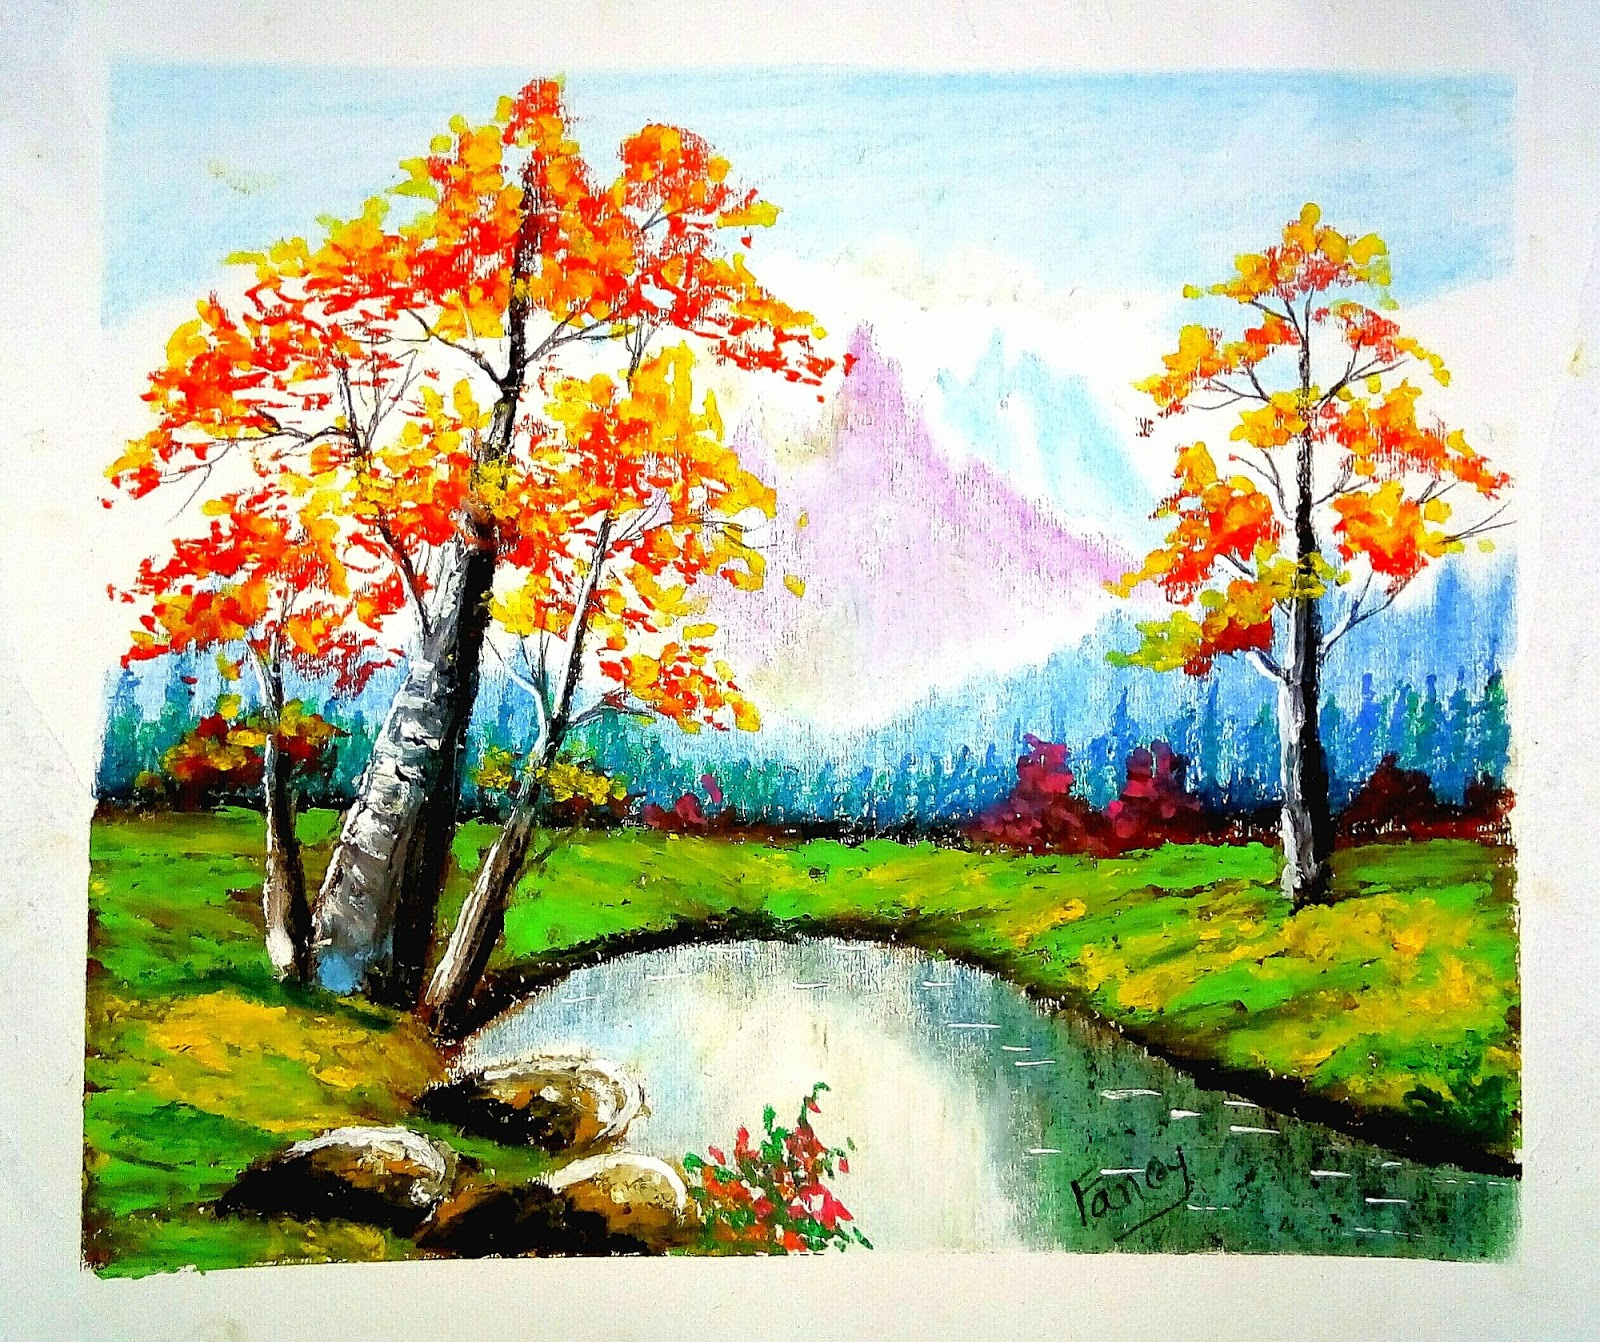 Beautiful Nature Pencil Drawings: Beautiful Drawings With Oil Pastels For Beginners